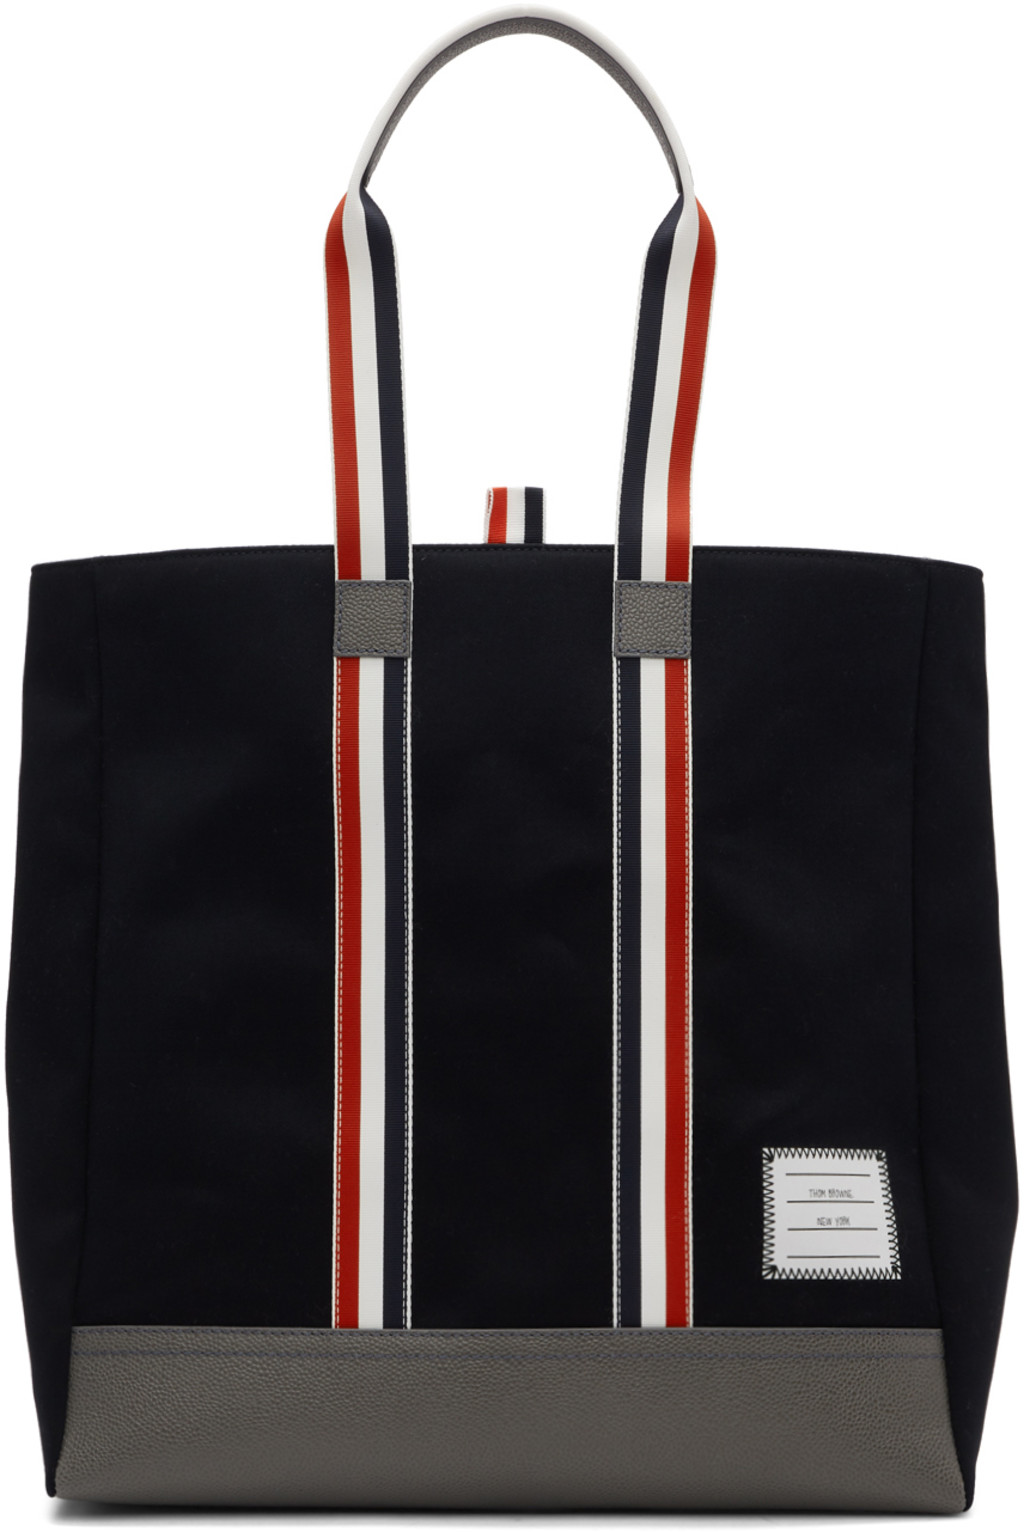 c37308ae1519 Thom browne for men collection ssense jpg 1024x1532 Replica thom browne bags